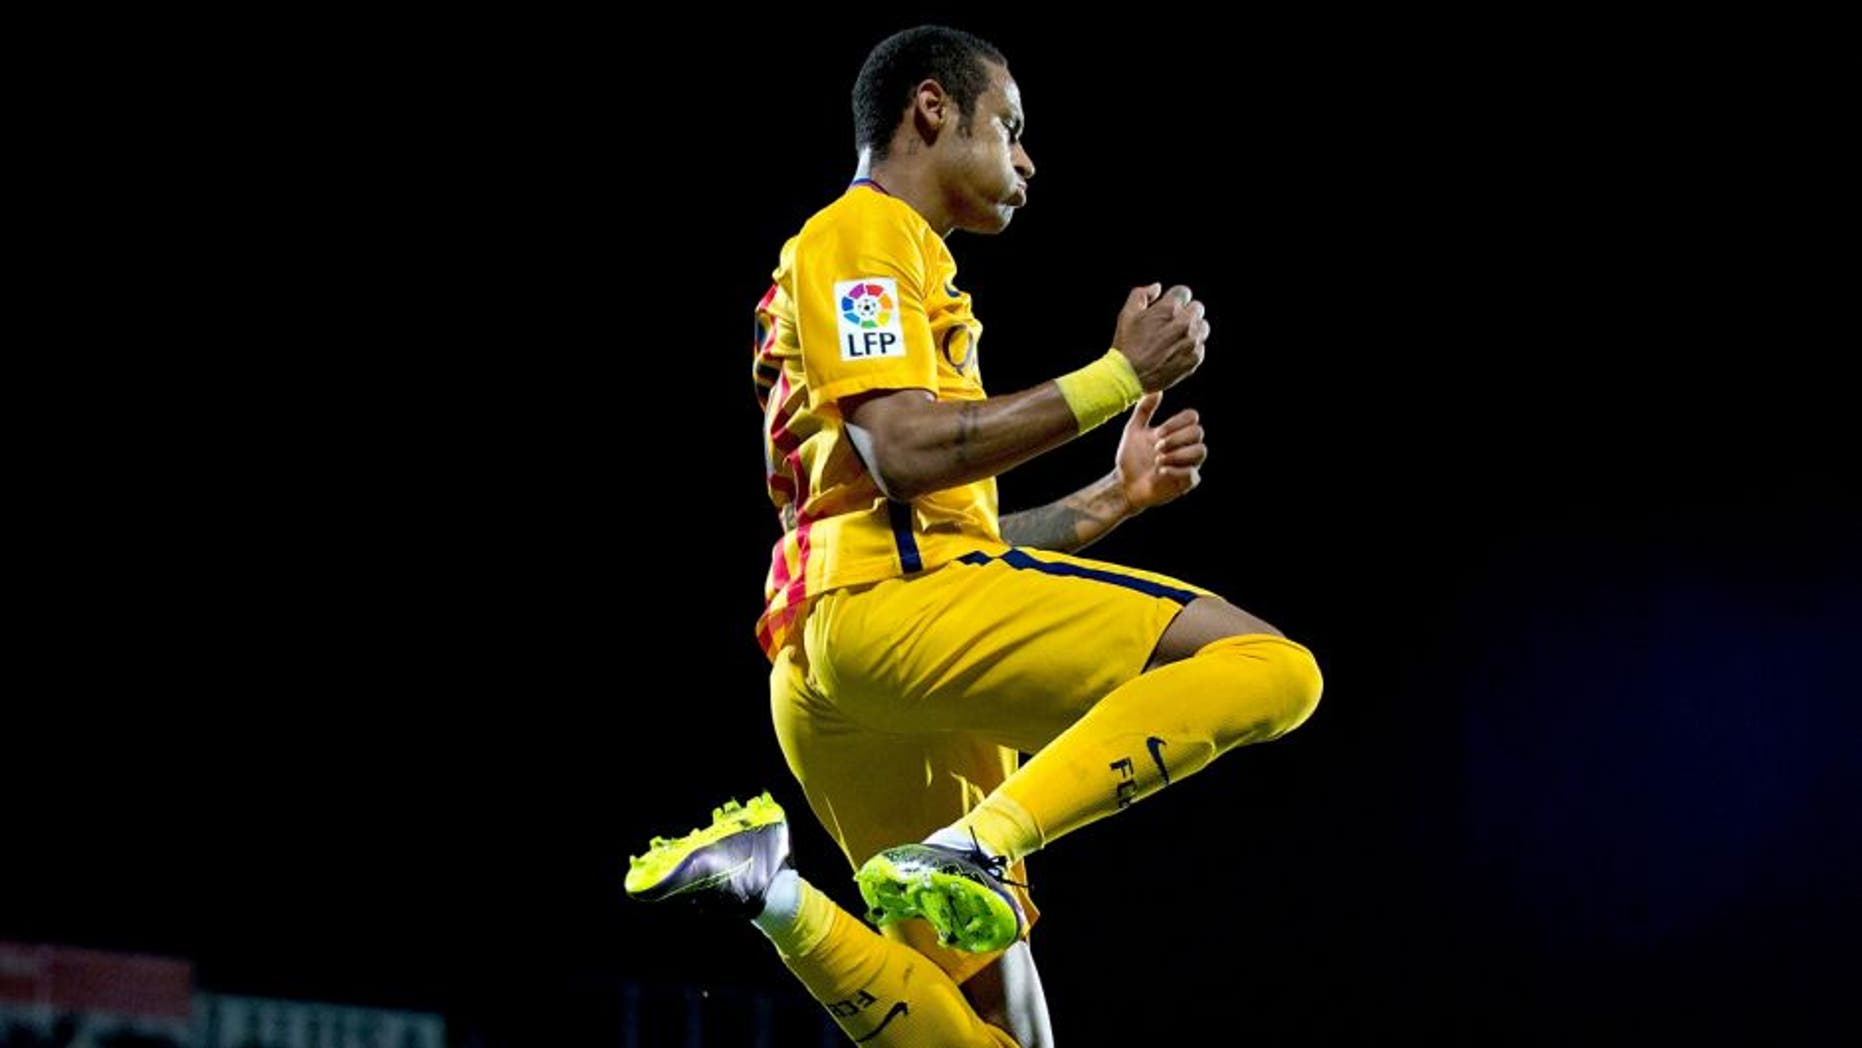 GETAFE, SPAIN - OCTOBER 31: Neymar JR. of FC Barcelona celebrates scoring their second goal during the La Liga match between Getafe CF and FC Barcelona at Coliseum Alfonso Perez on October 31, 2015 in Getafe, Spain. (Photo by Gonzalo Arroyo Moreno/Getty Images)